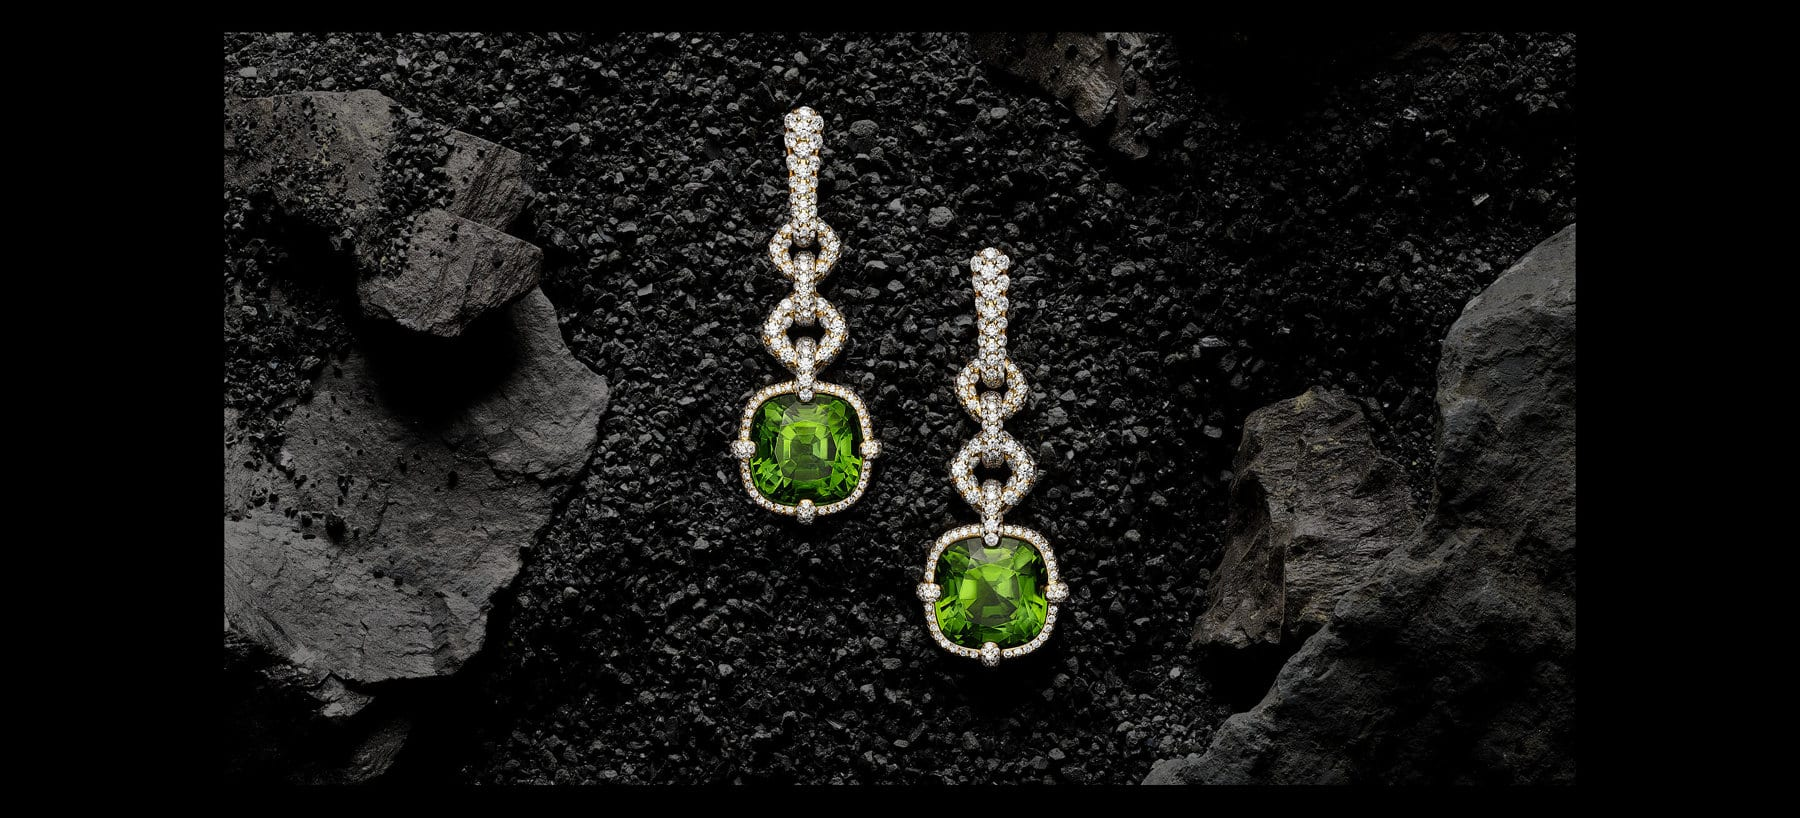 A color photo shows a pair of David Yurman High Jewelry Gems drop earrings laying at different levels from one another upright on top of a pile of small, rough, dark stones surrounded by larger dark, textured rocks. The jewelry is crafted from 18K yellow gold and is encrusted with pavé white diamonds. Two large faceted peridots are set at the end of each drop as the focal gemstones of the design.